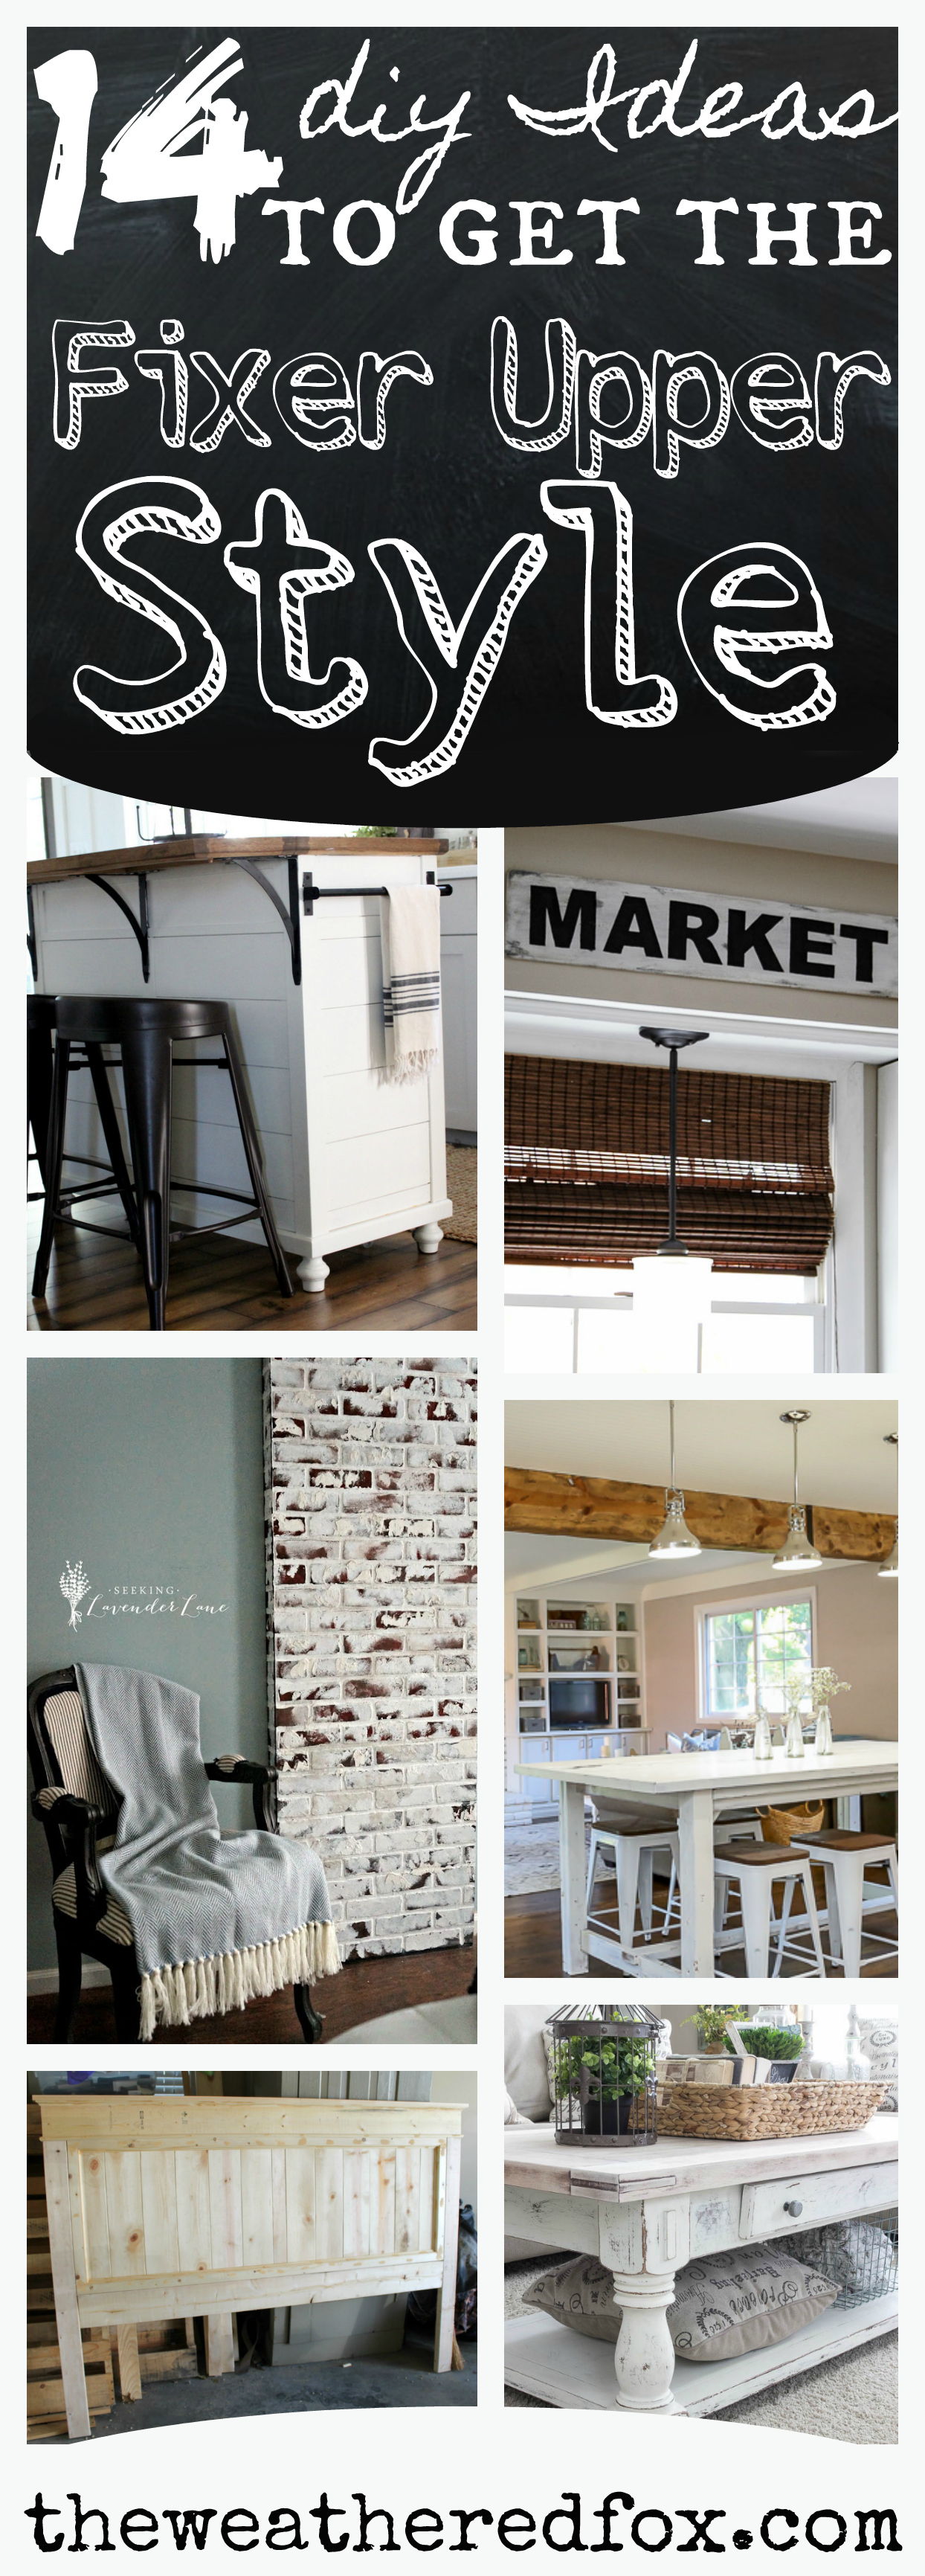 14 DIYs to add Fixer Upper Style It's no secret that Joanna Gaines has the world on a string. But you don't need to be a guest on the HGTV show to get the look! Here are 14 #diy projects to bring the #farmhouse style to your home.